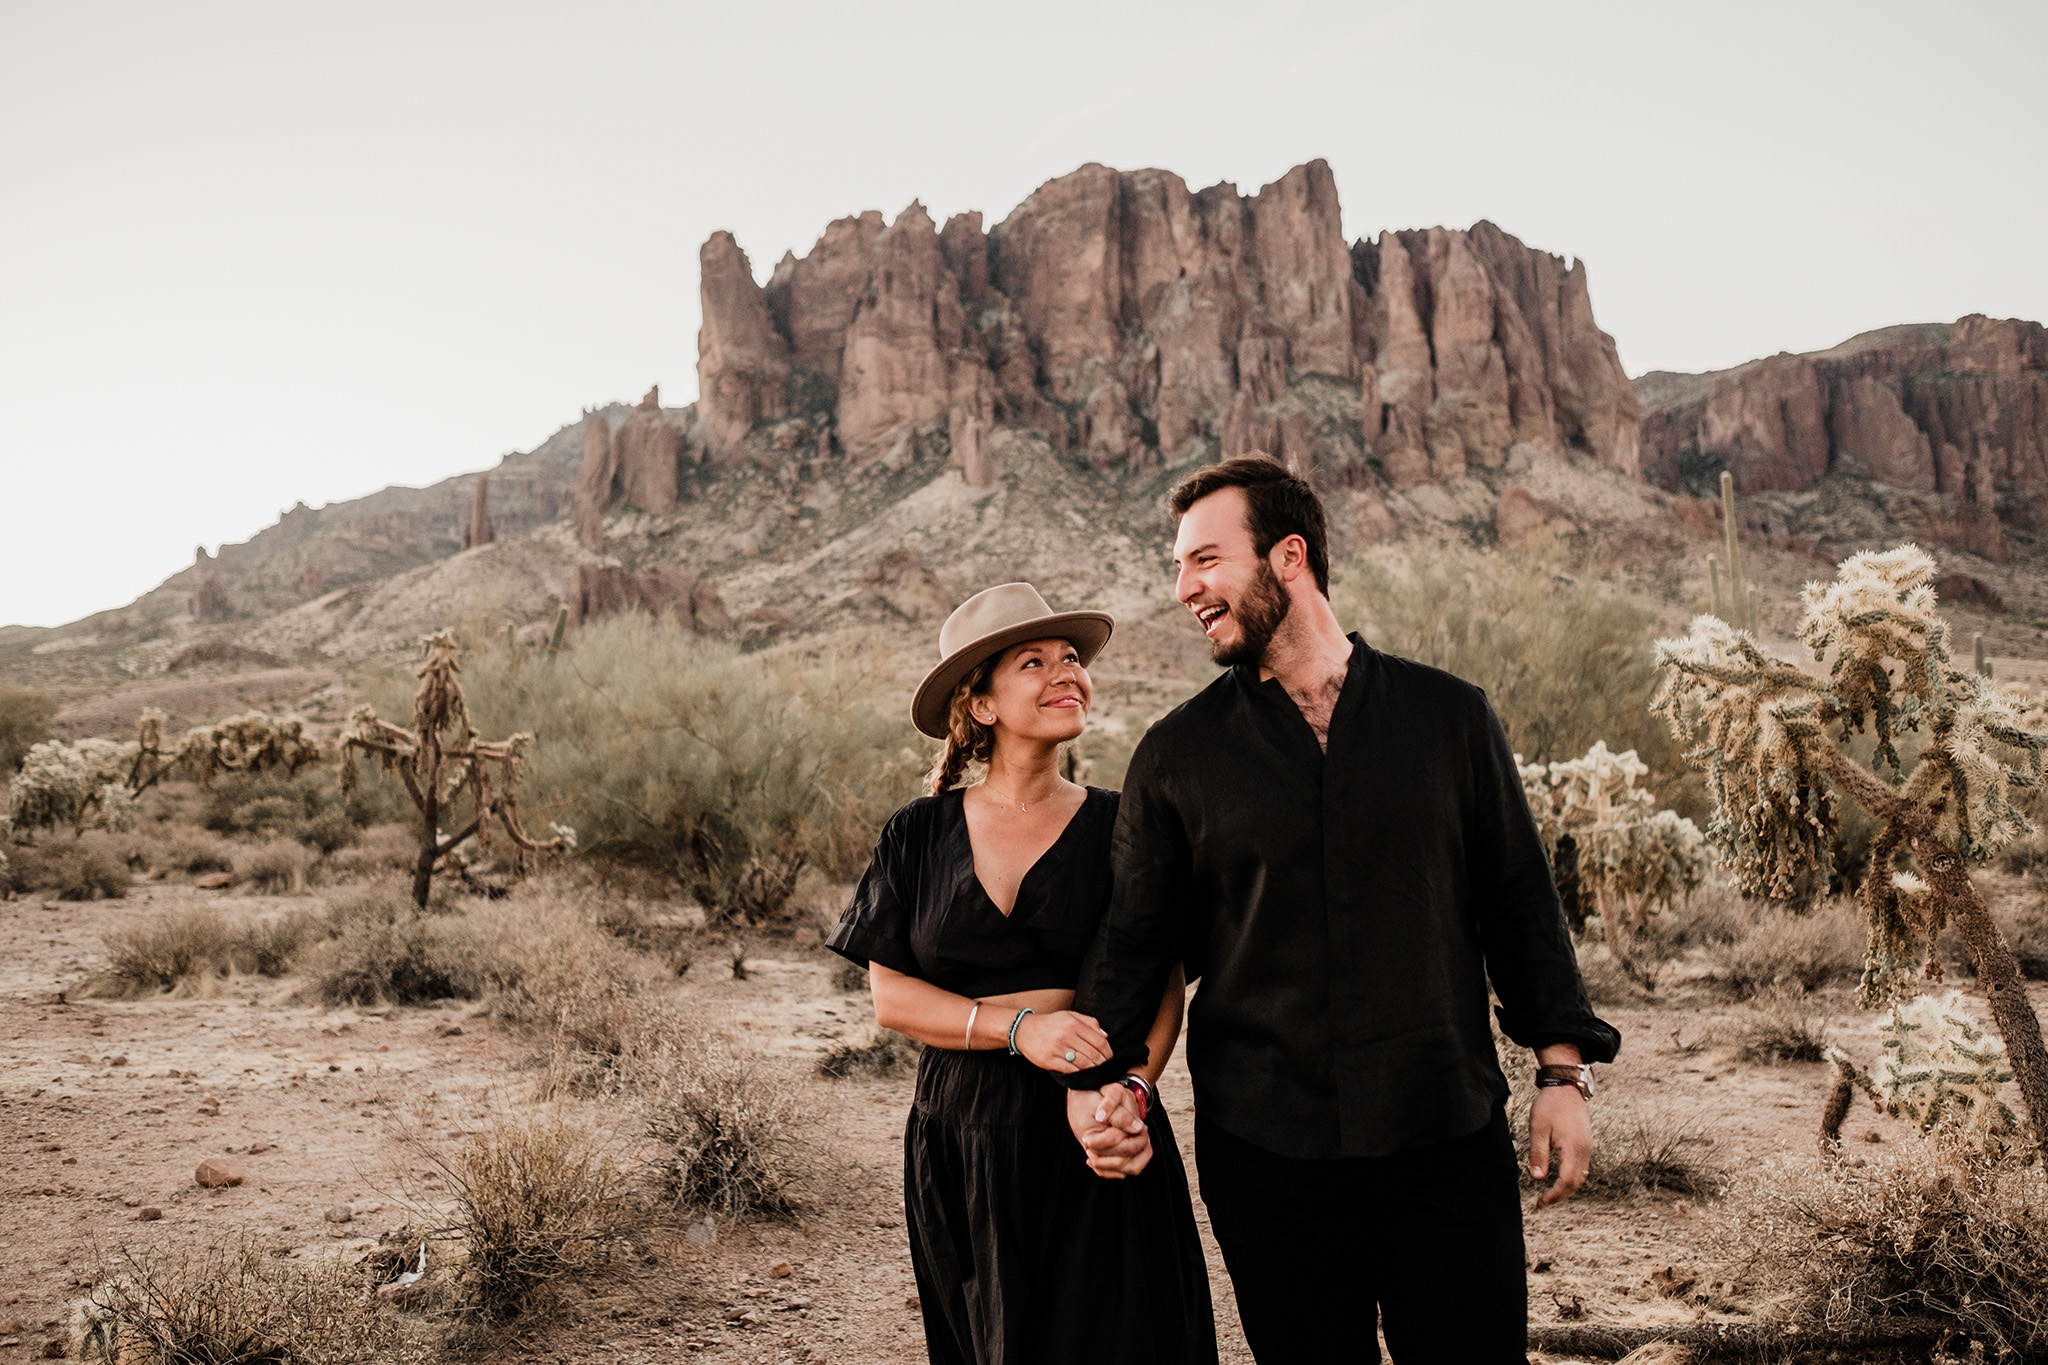 Arizona-Desert-Intimate-Wedding-Photographer-Lost-Dutchman-State-Park (4)